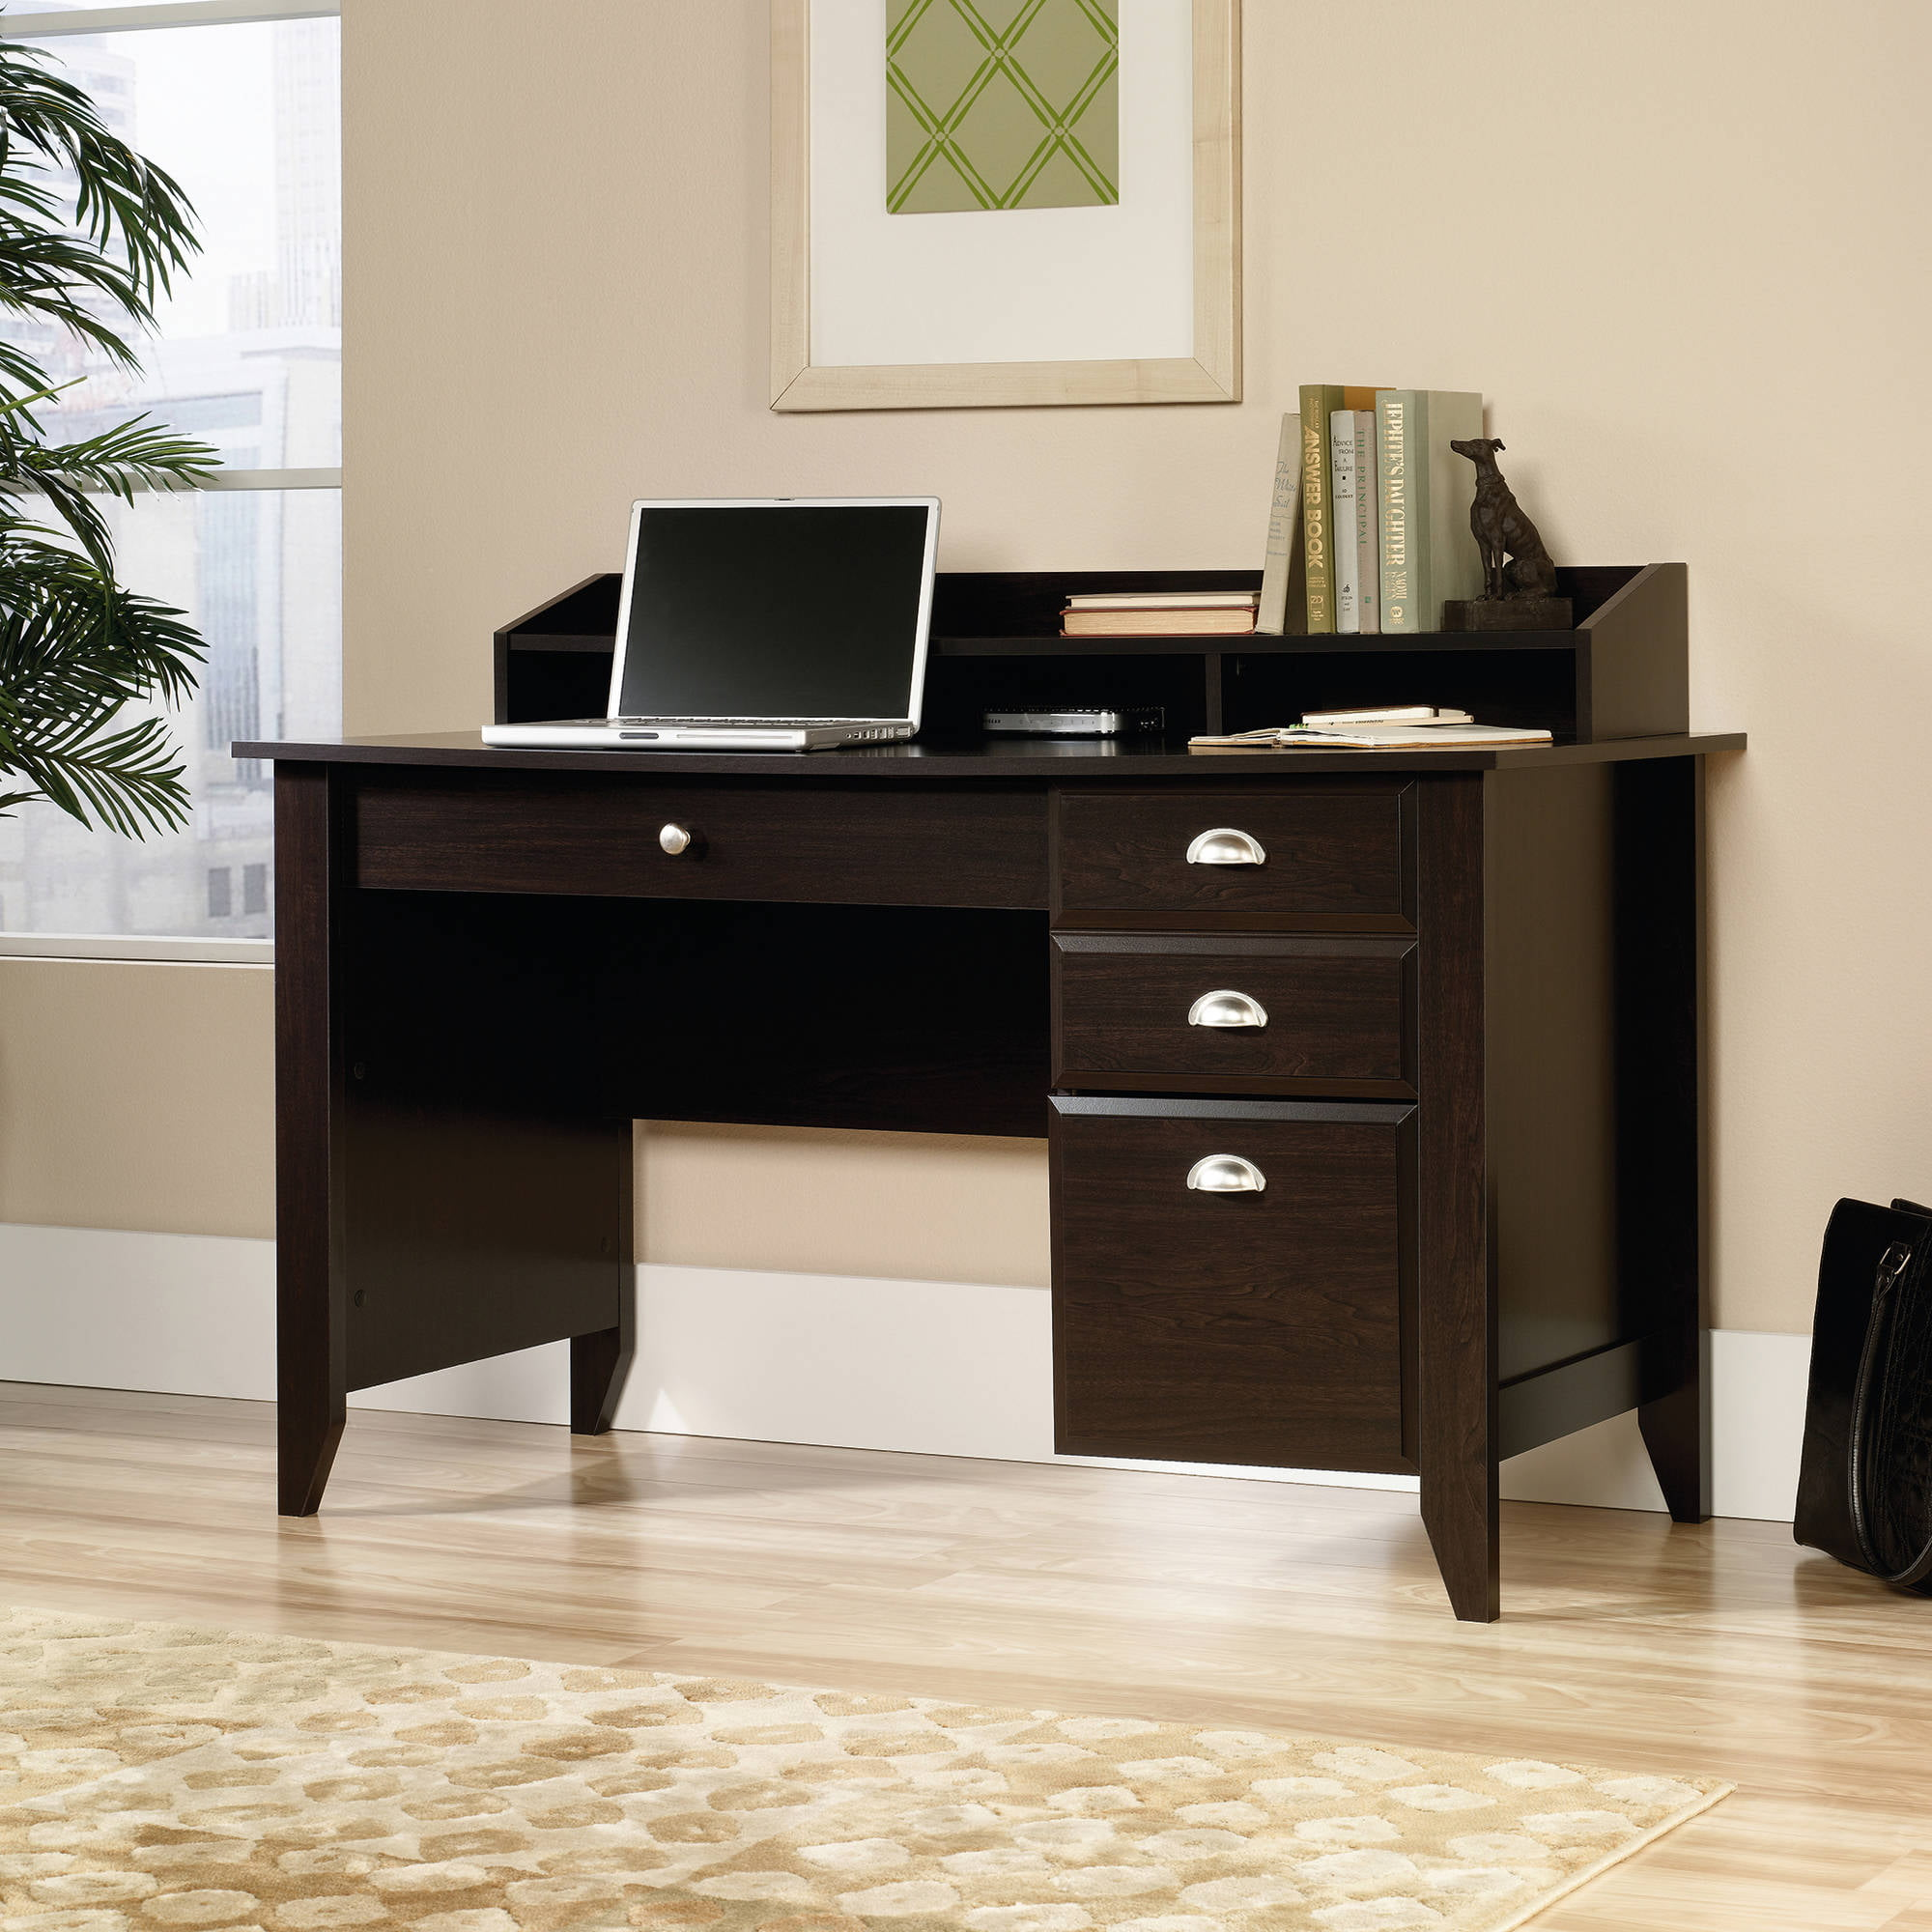 Merveilleux Sauder Harbor View Computer Desk With Hutch, Antiqued White   Walmart.com